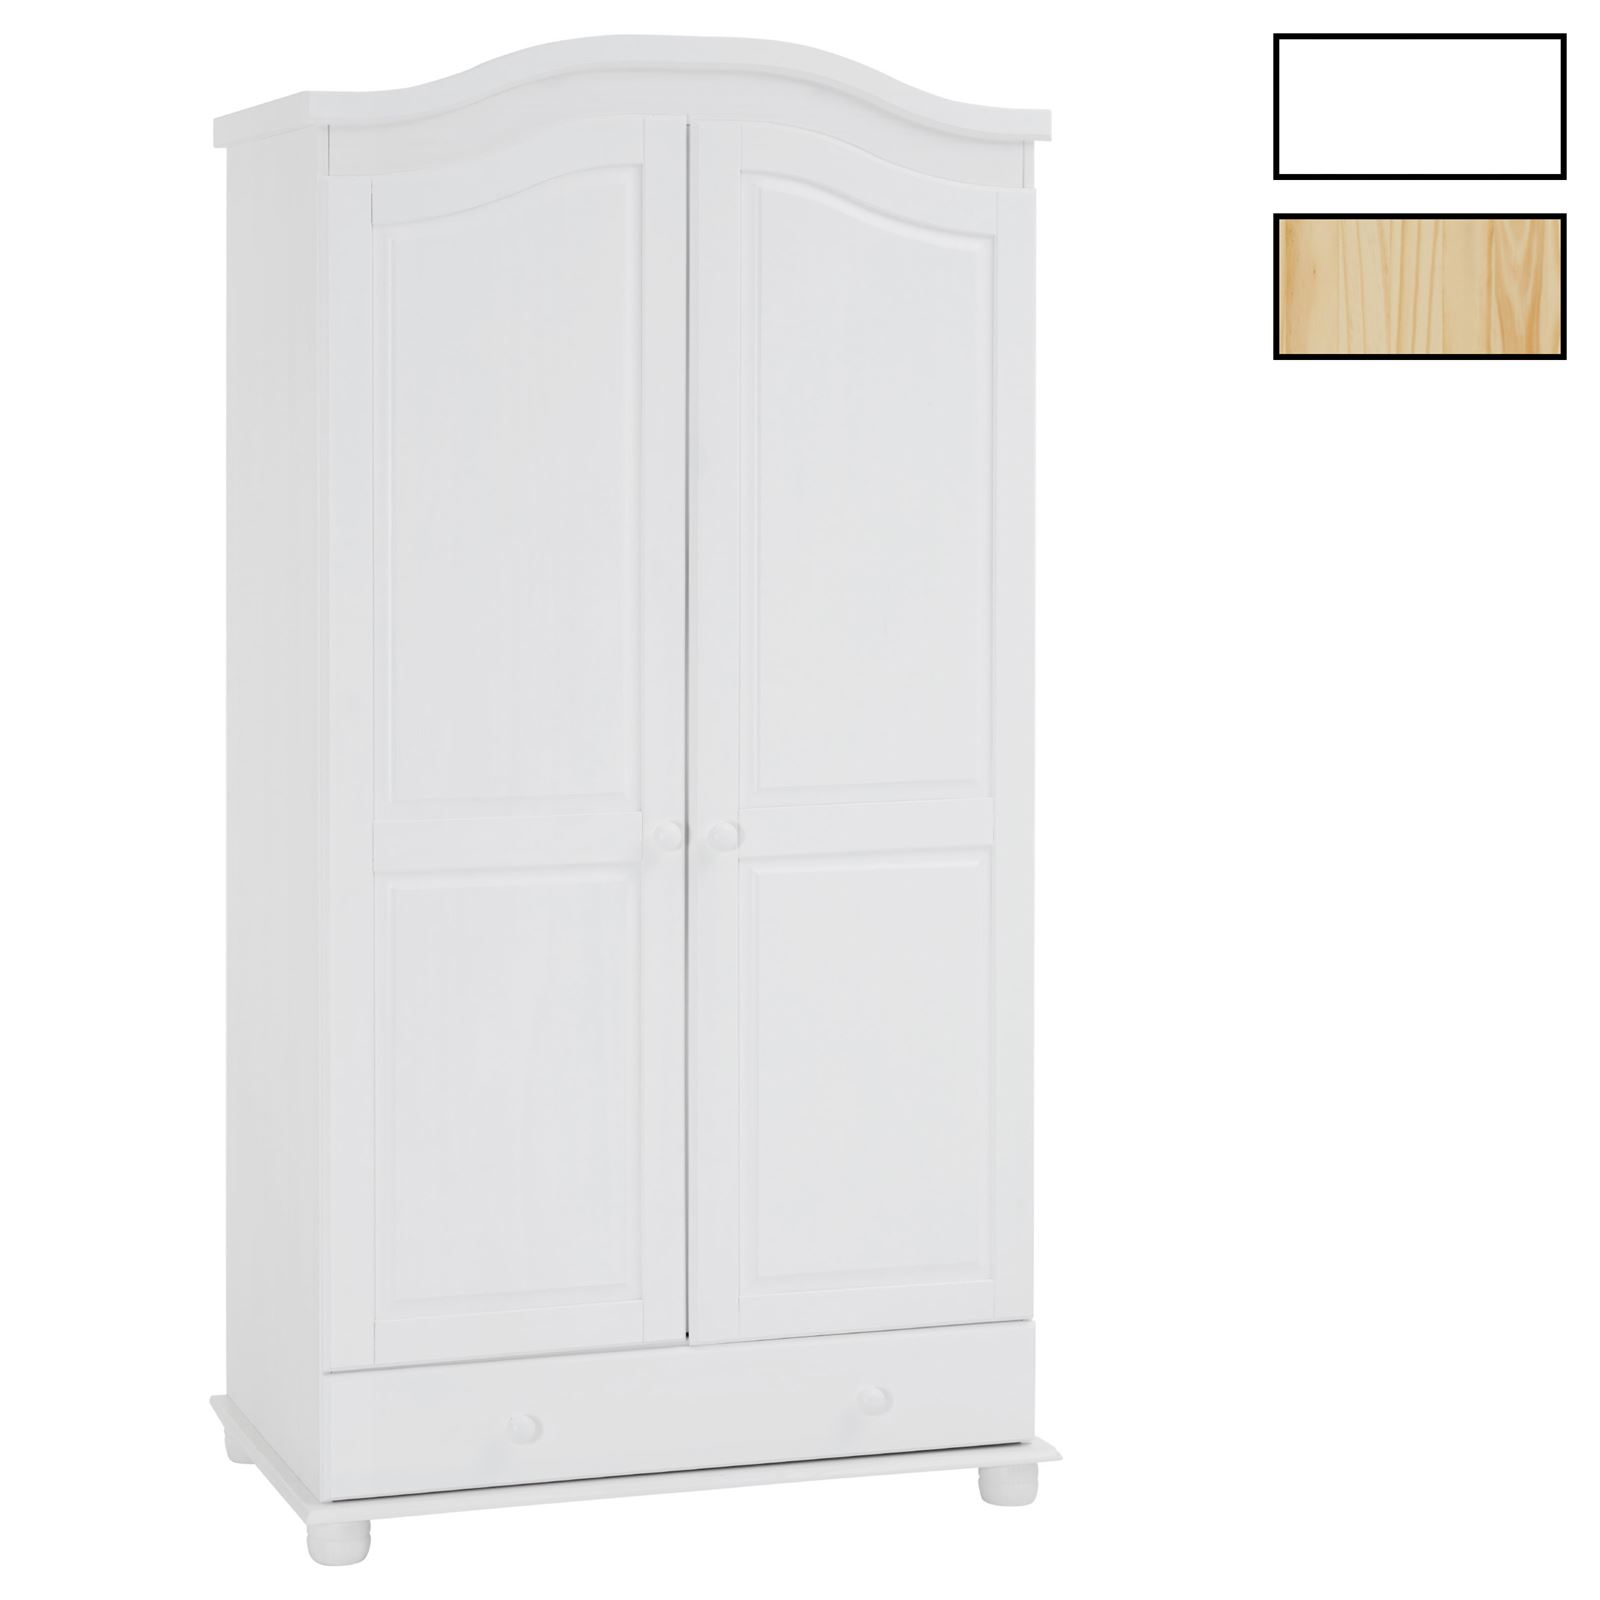 armoire en pin bergen 3 coloris disponibles mobil meubles. Black Bedroom Furniture Sets. Home Design Ideas